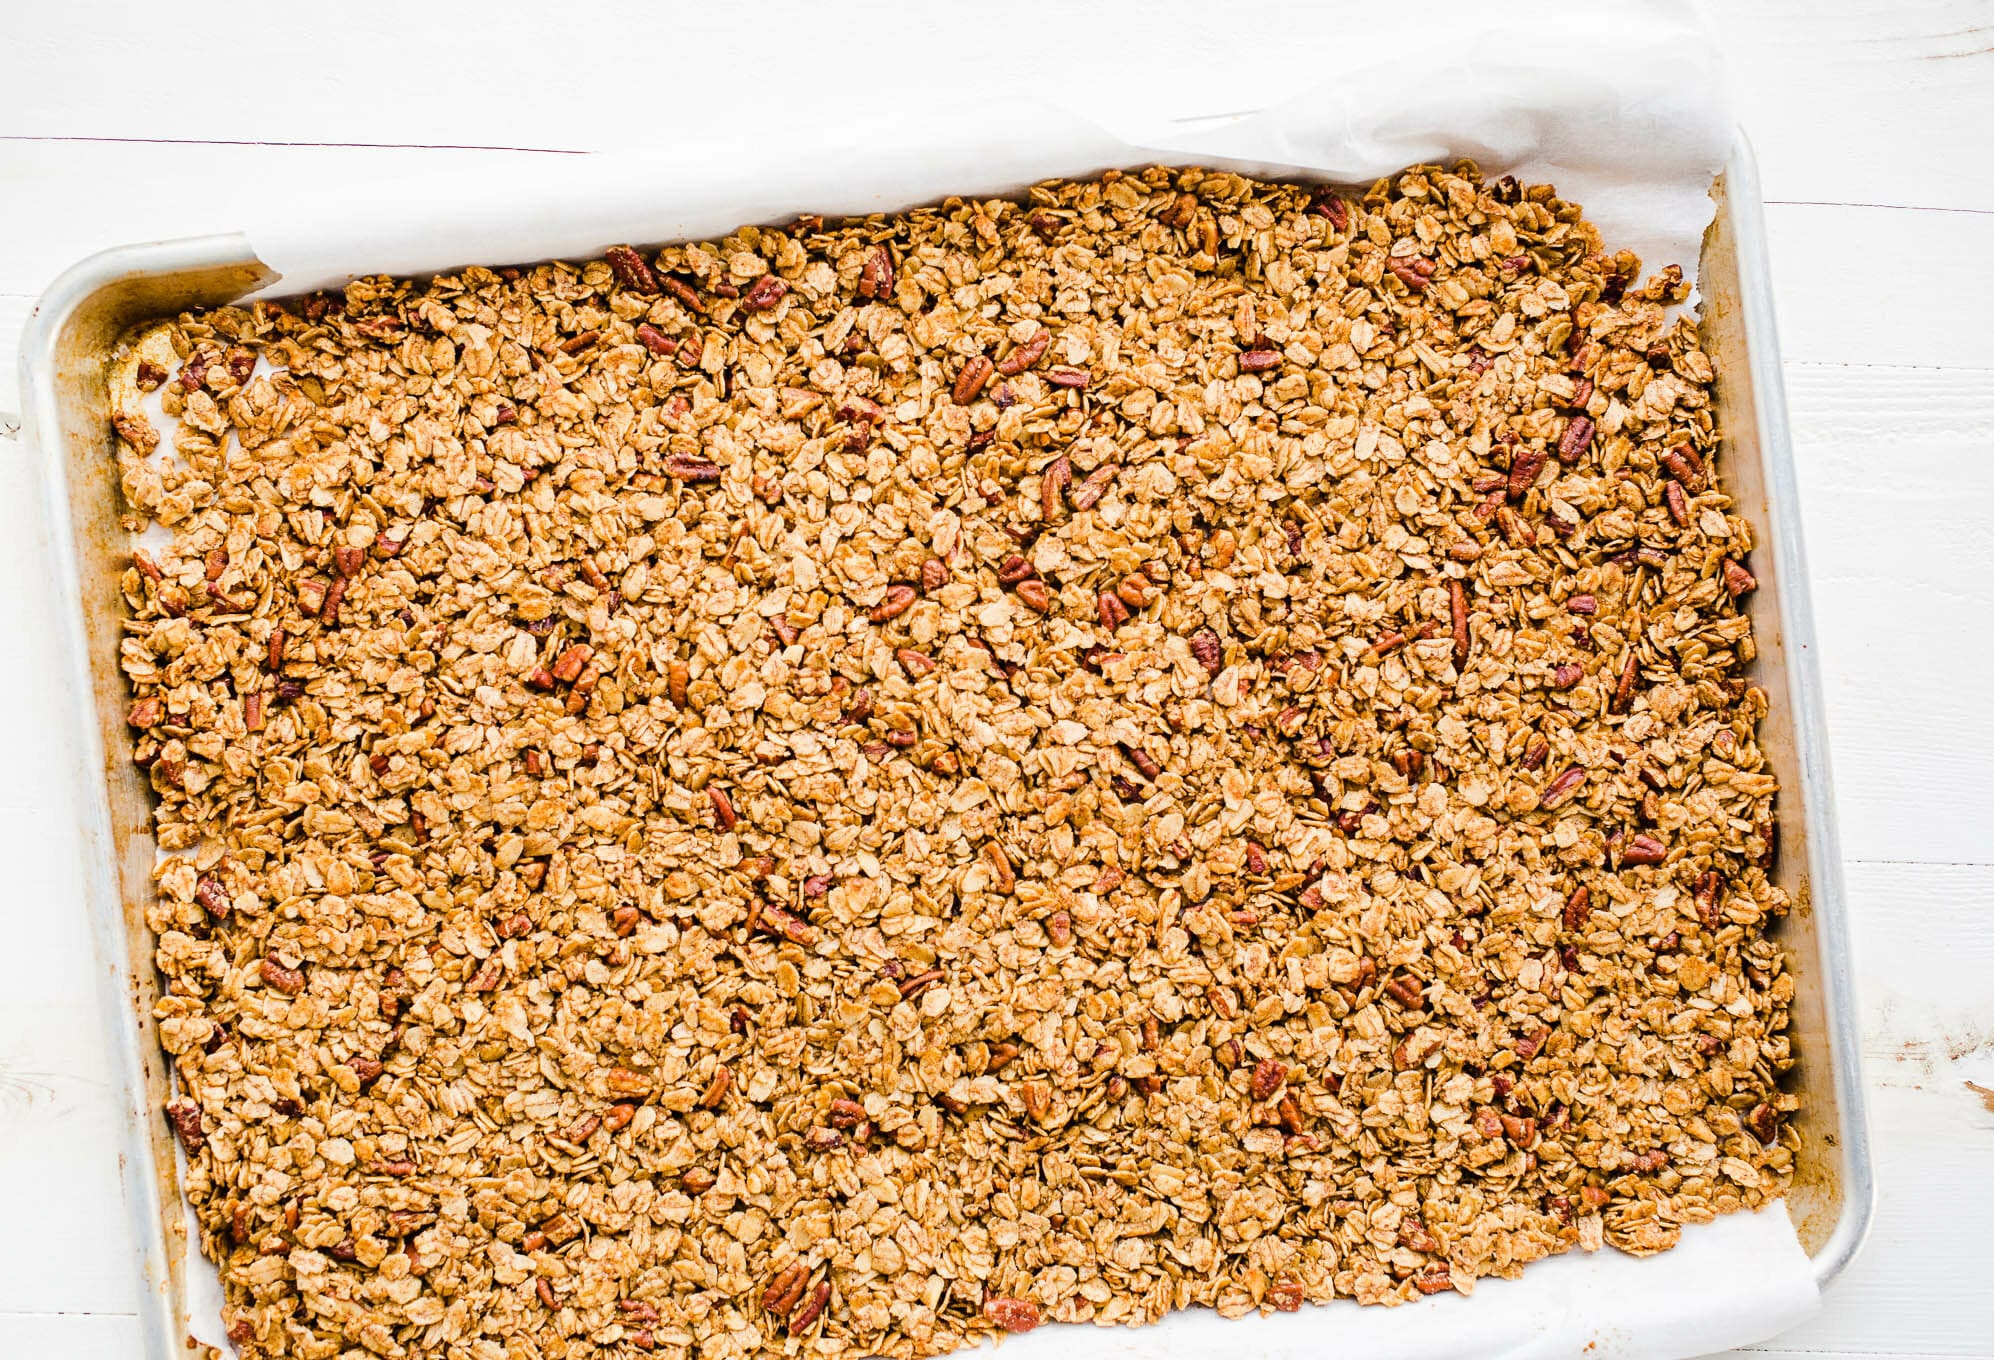 baked granola in pan